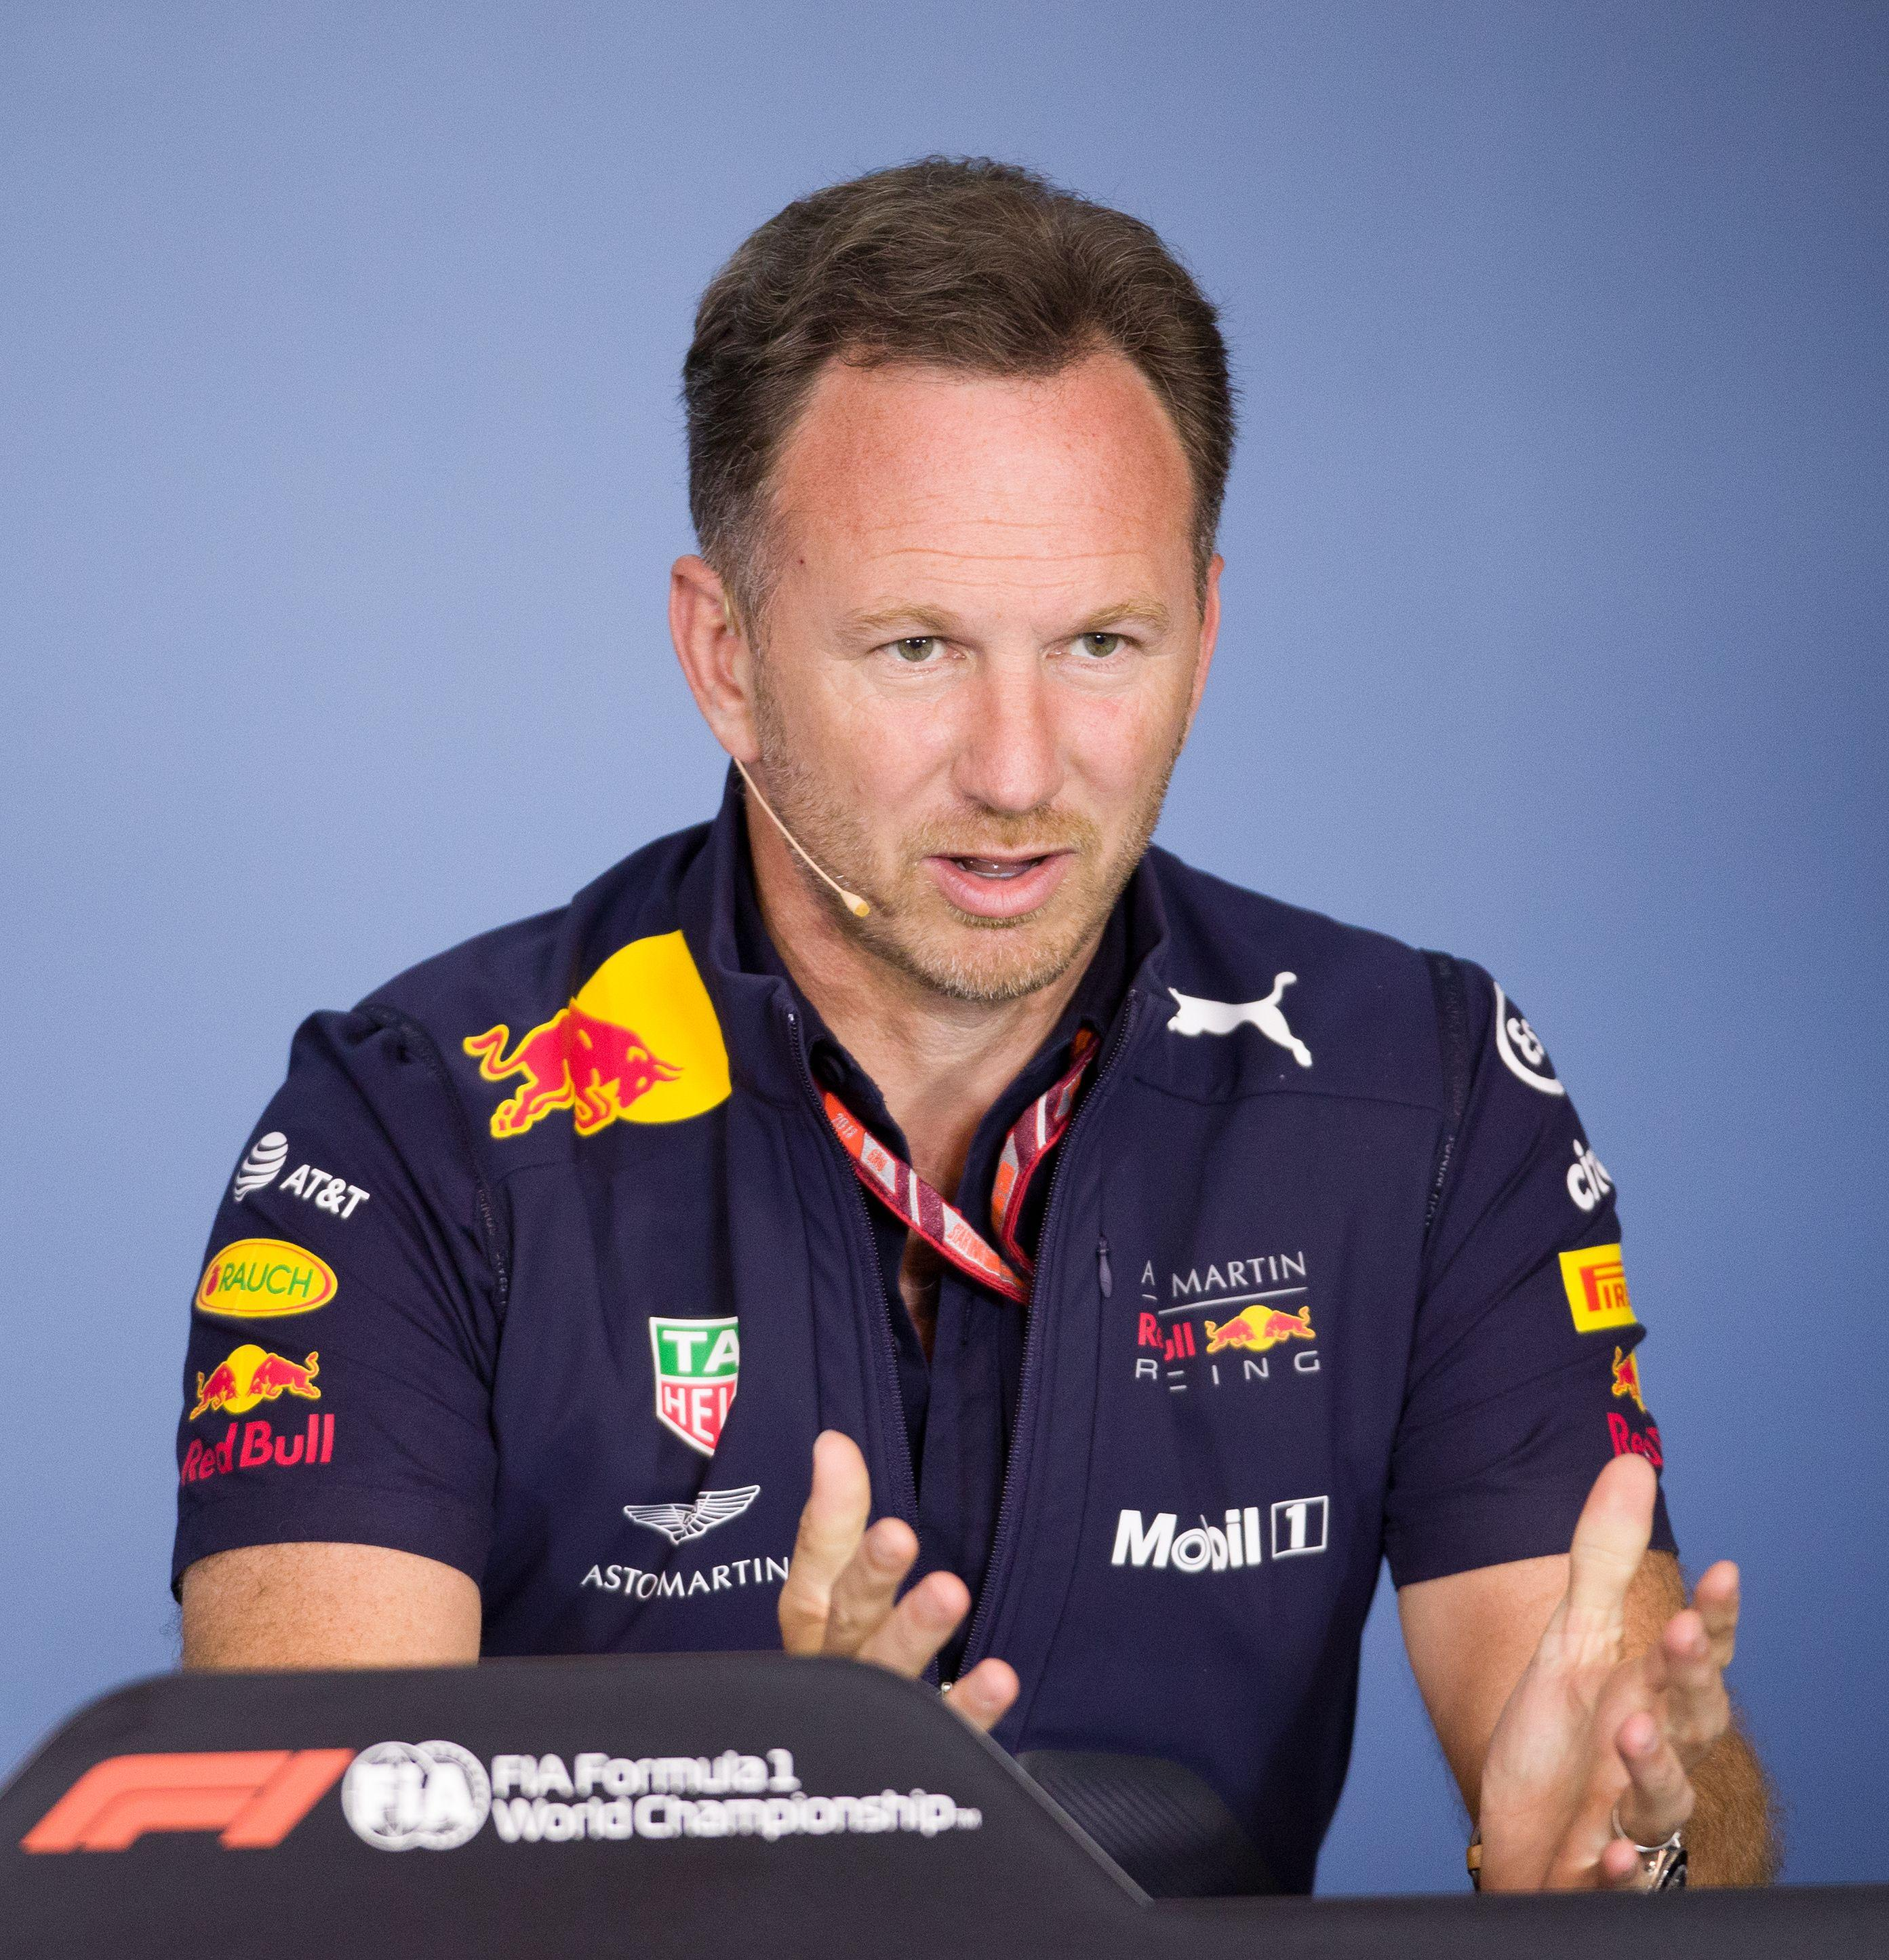 Horner has grand plans to revamp F1 in Britain